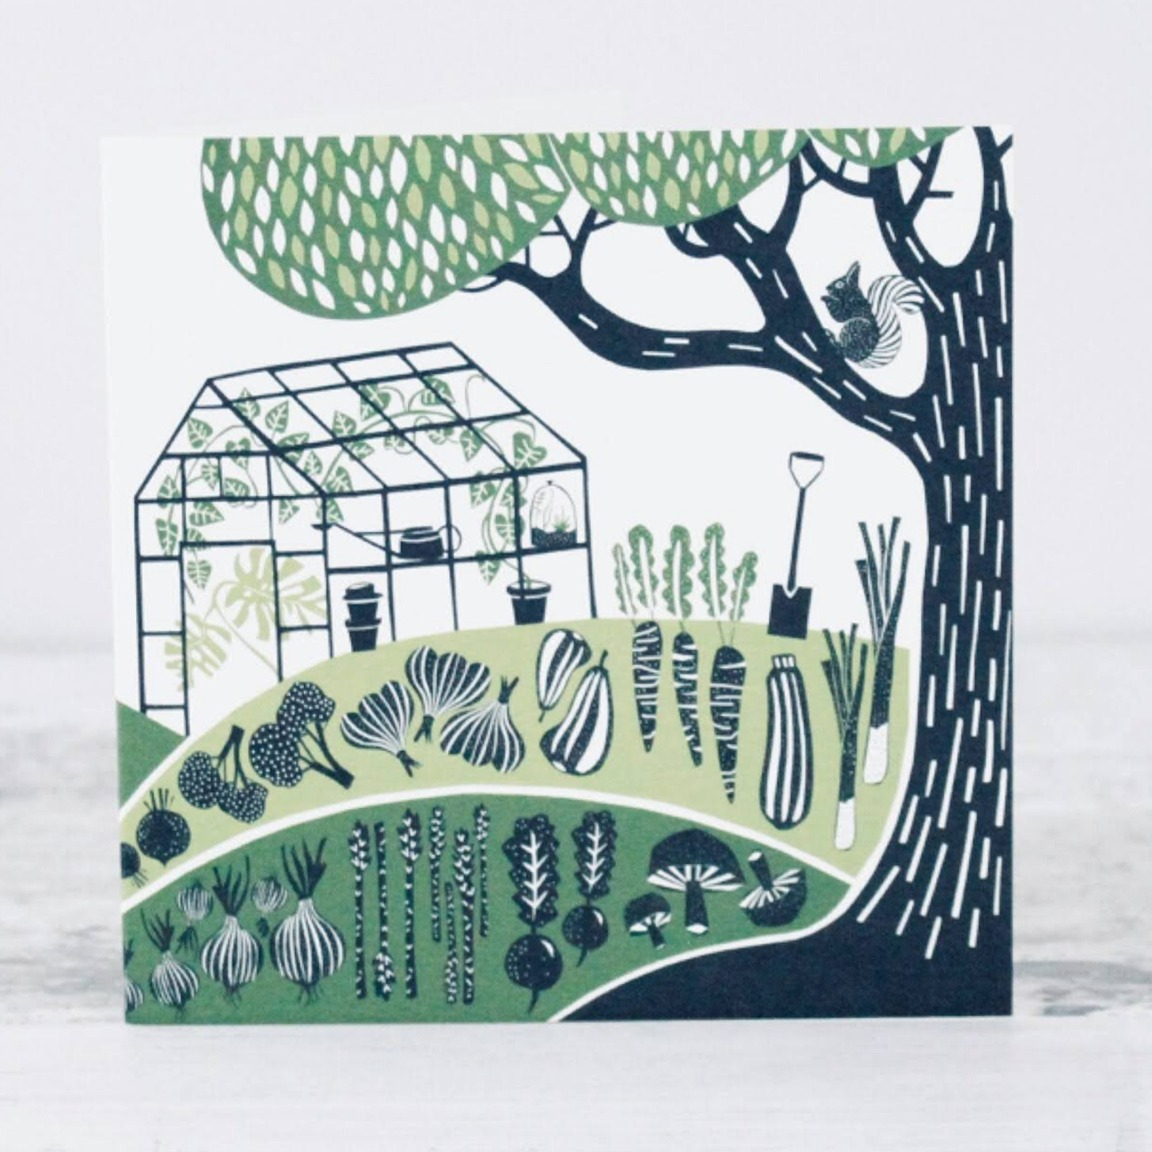 Allotment Card by Folded Forest